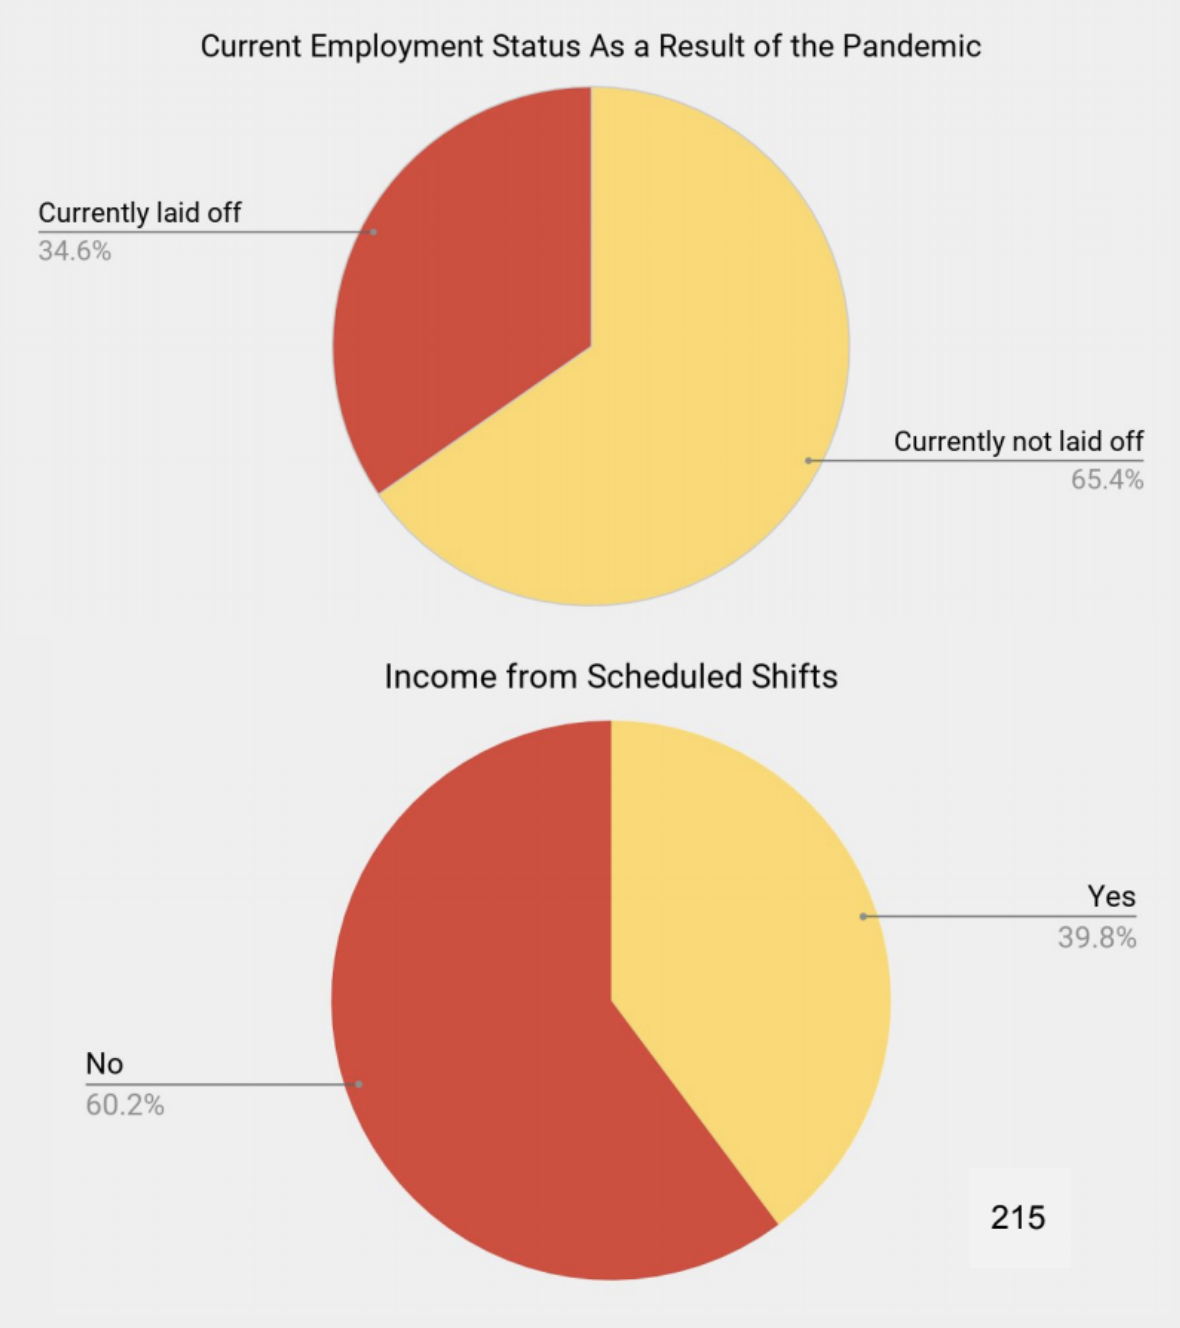 60.2 per cent employed students are not currently receiving income from their scheduled shifts.